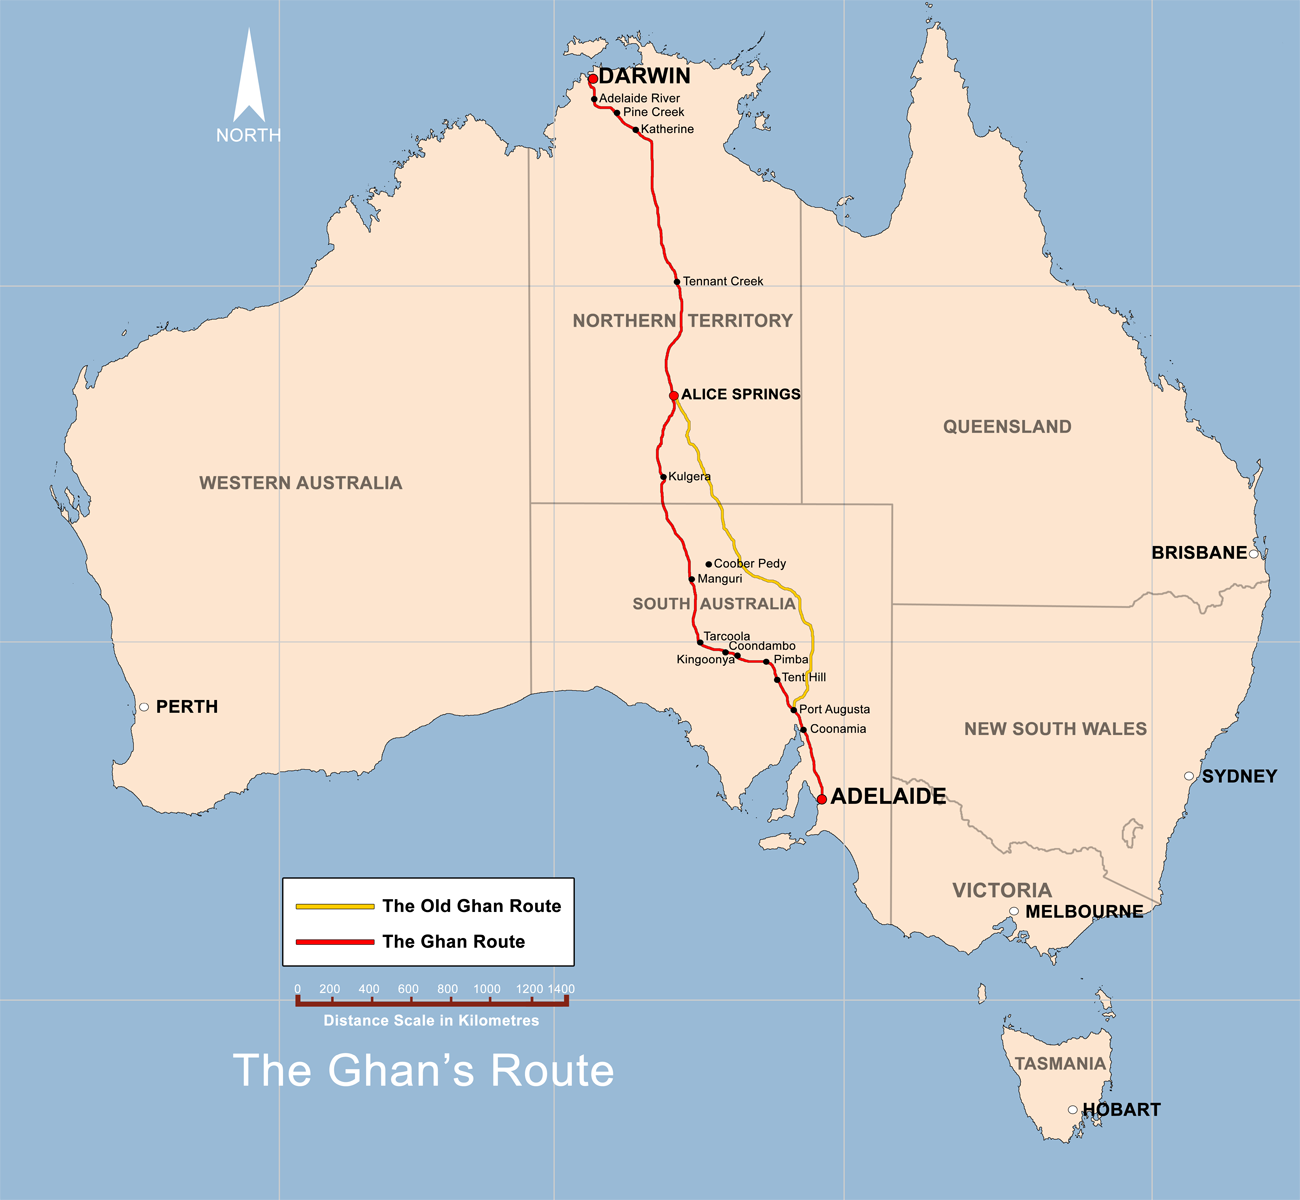 The Ghan Route